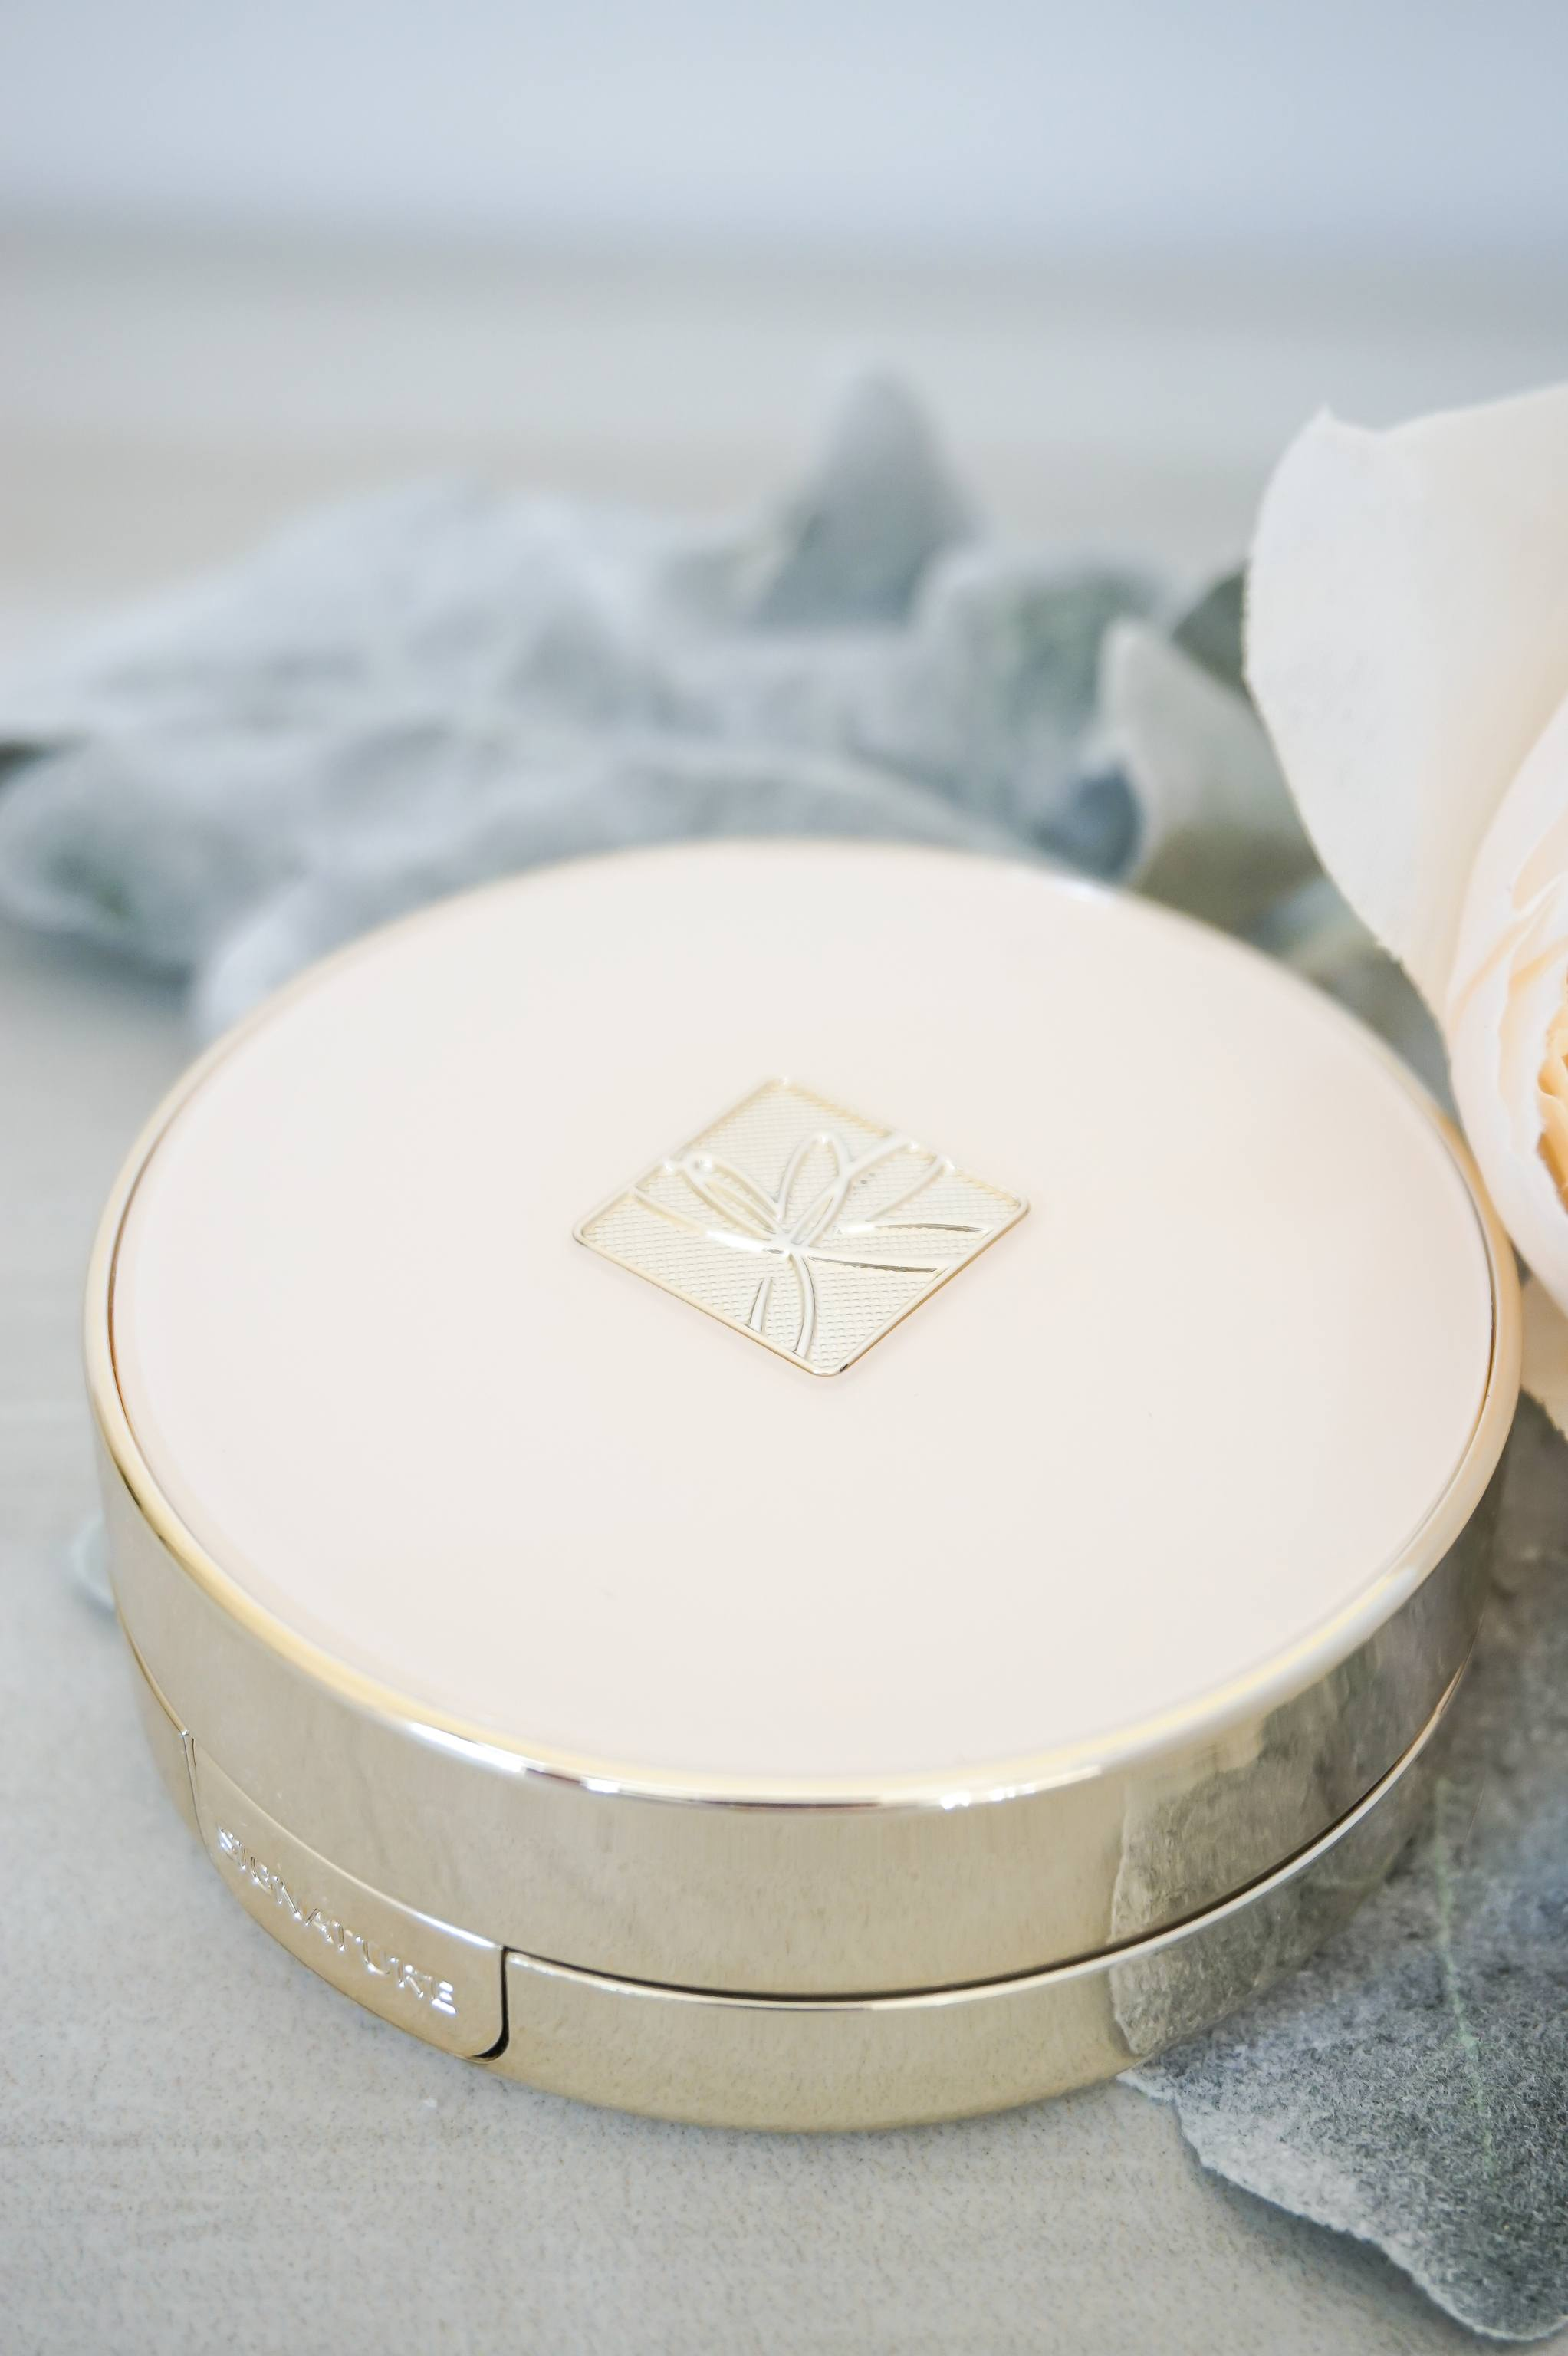 Skincare,Makeup - Missha Signature Essence Cushion Intensive Cover